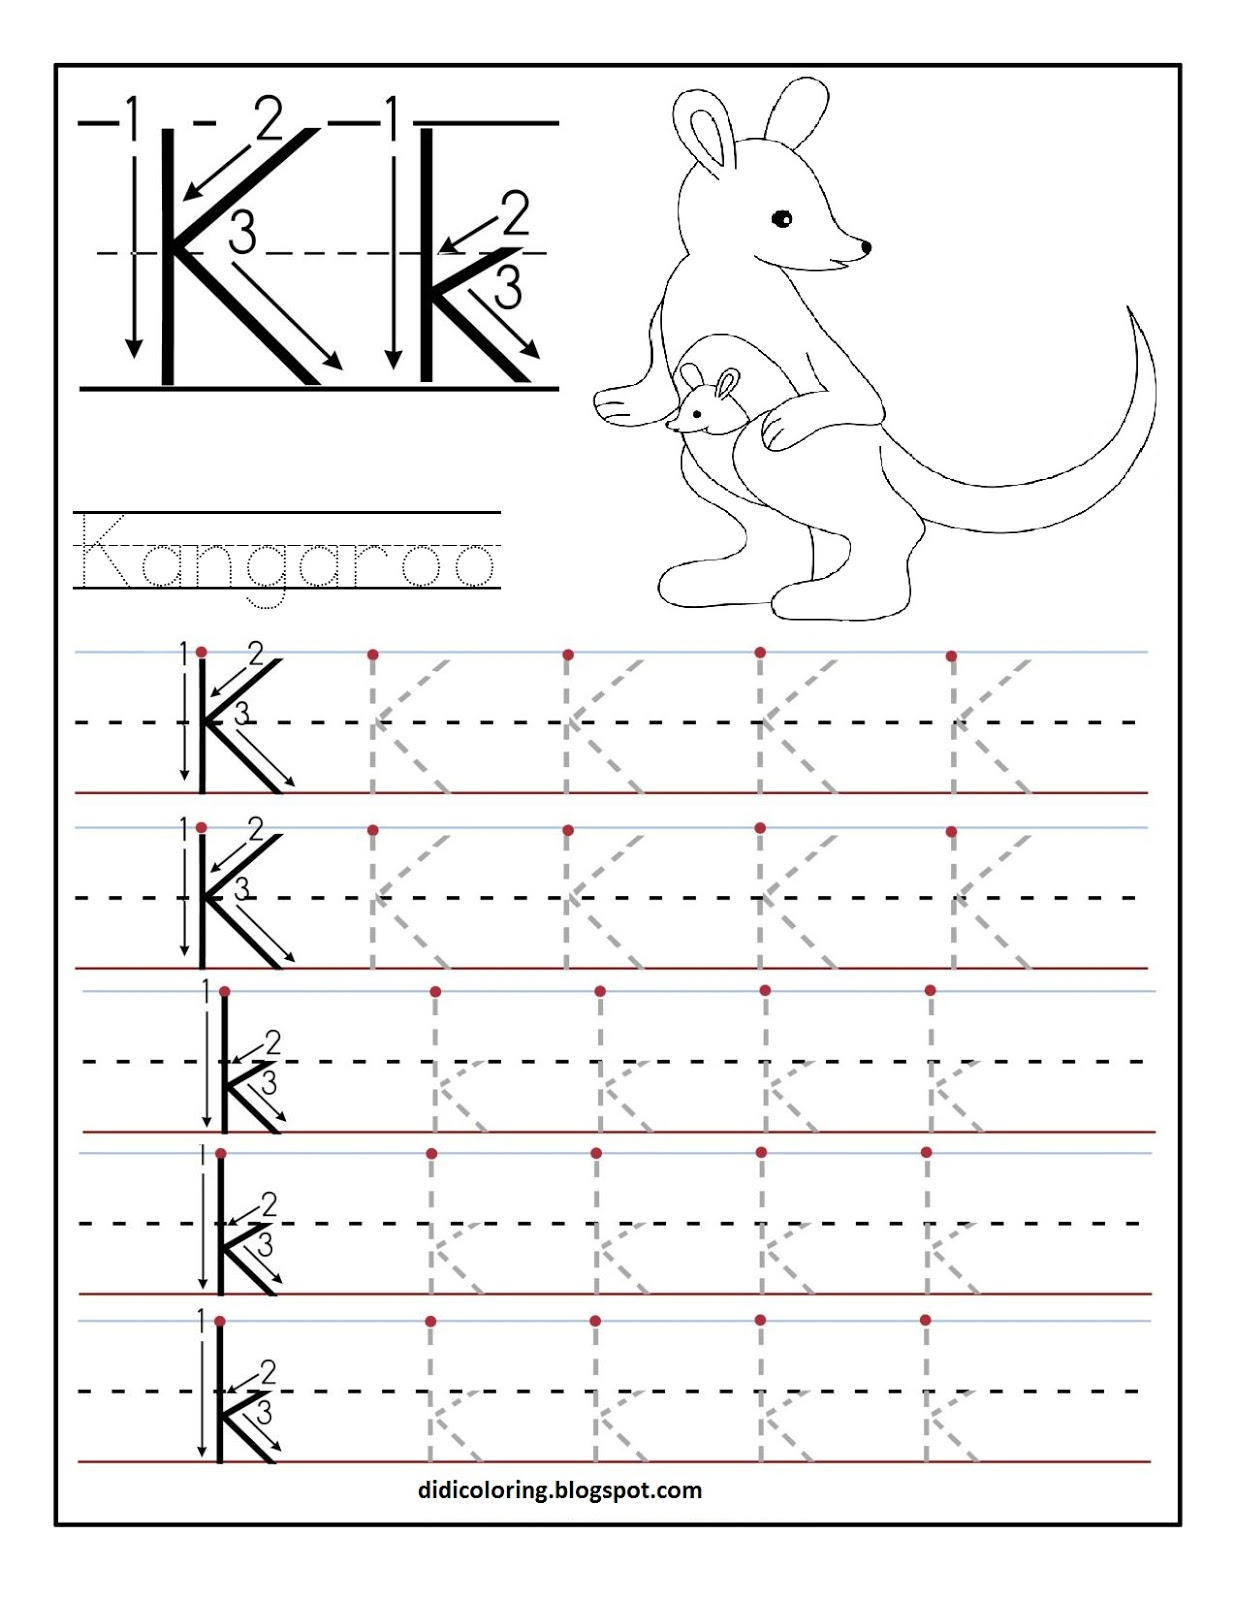 - Didi Coloring Page: Free Printable Worksheet Letter K For Your